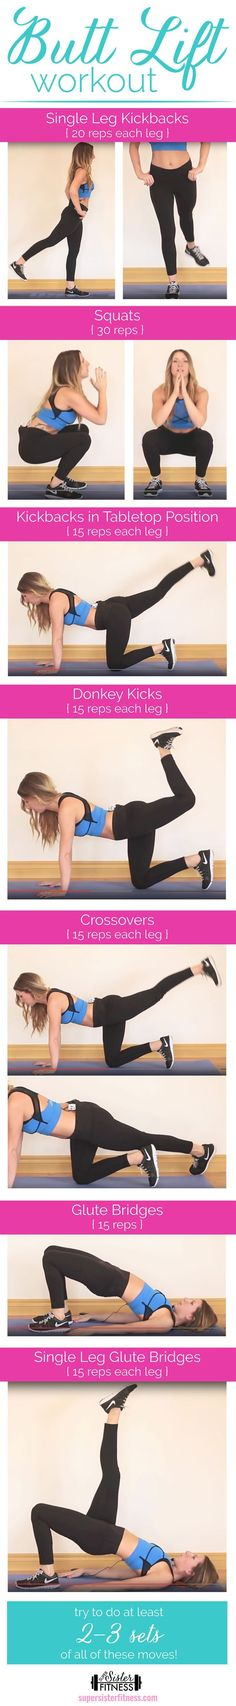 10 Lazy girl butt-shaping exercises that are so easy to try. 10 Super easy lazy girl butt-shaping exercises that can give you a beautiful Brazilian butt Fitness Workouts, Fitness Motivation, Lower Ab Workouts, Sport Fitness, Body Fitness, At Home Workouts, Fitness Tips, Body Workouts, Toning Exercises